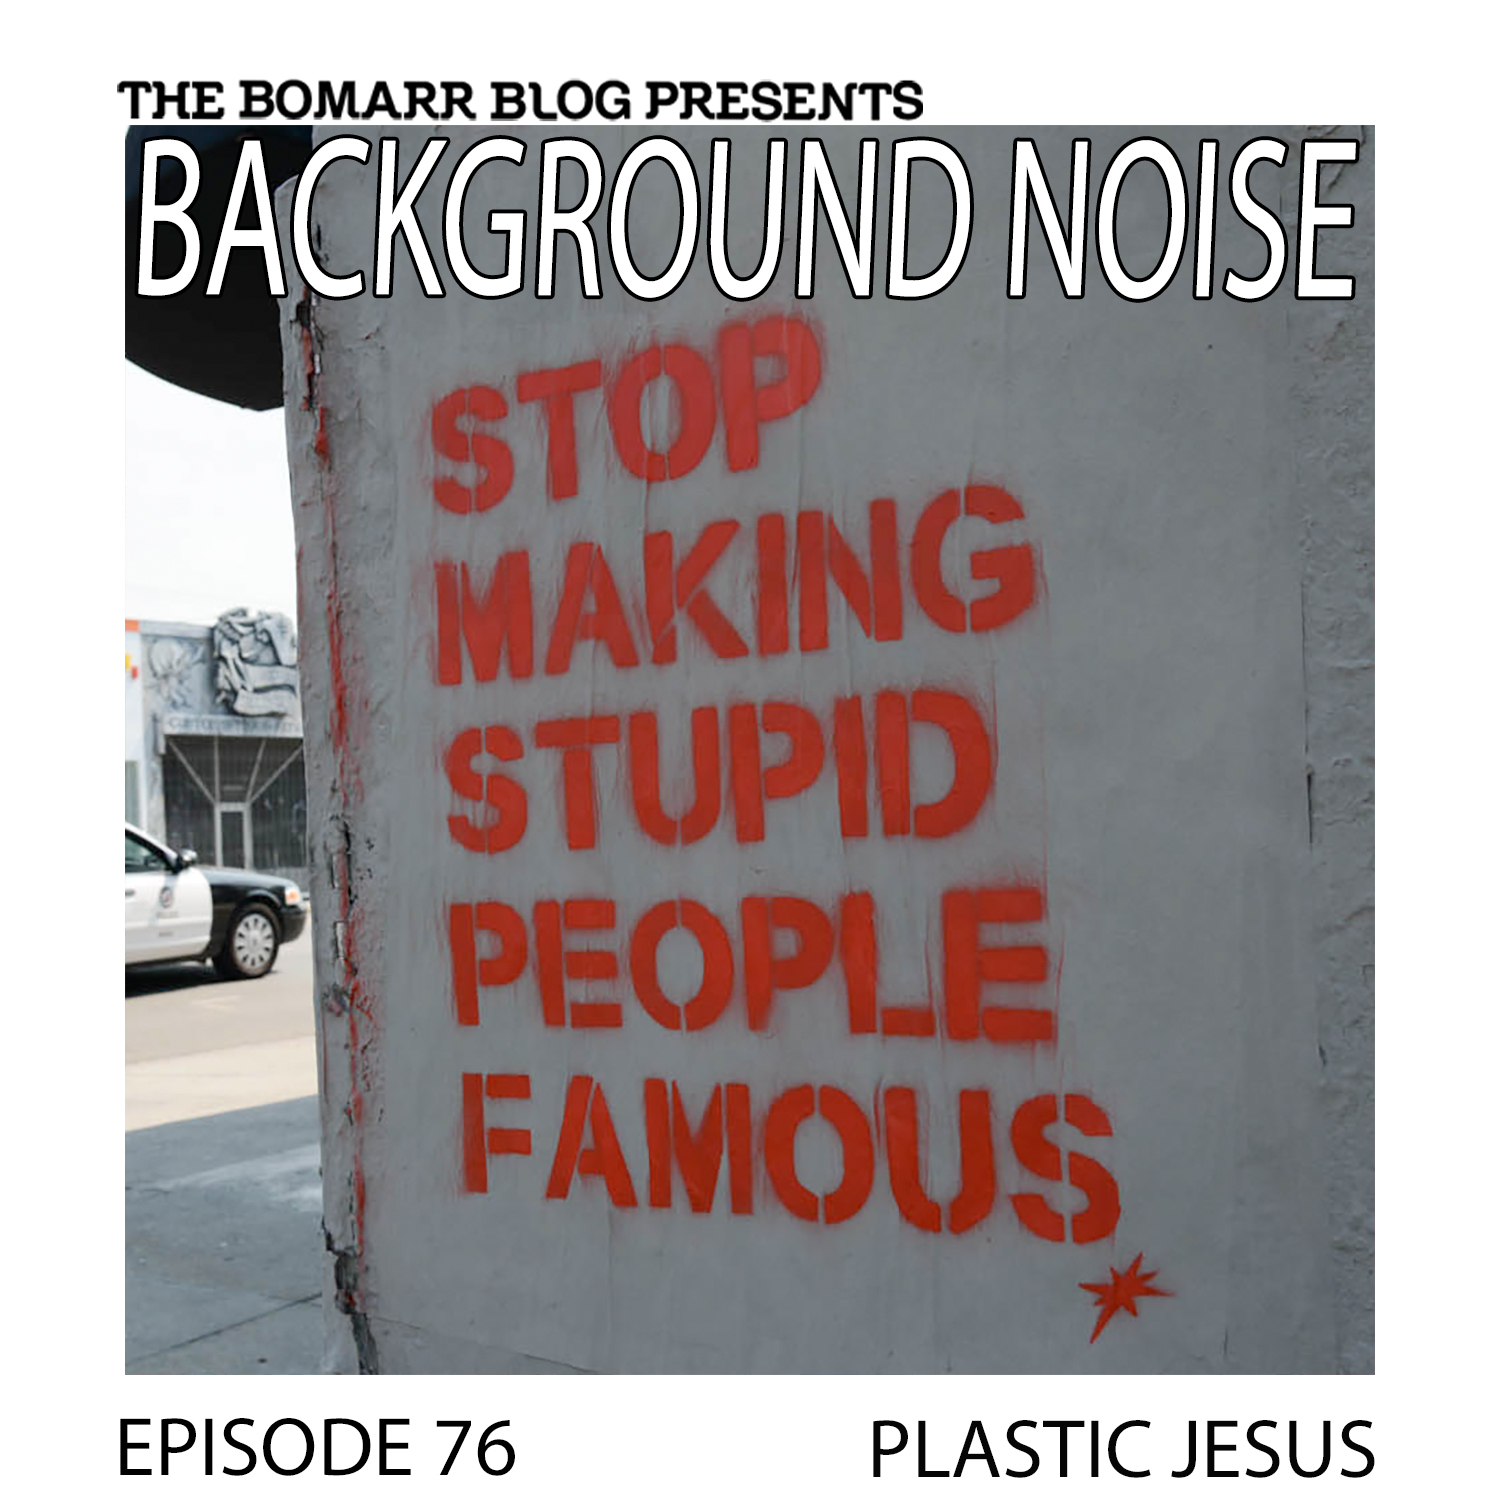 THE BACKGROUND NOISE PODCAST SERIES FOCUSES ON THE MUSIC THAT ARTISTS LISTEN TO WHEN THEY WORK, WHAT MUSIC INSPIRES THEM, OR JUST MUSIC THEY LIKE. THIS WEEK, IN EPISODE 76, THE FOCUS IS ON LOS ANGELES STREET ARTIST PLASTIC JESUS